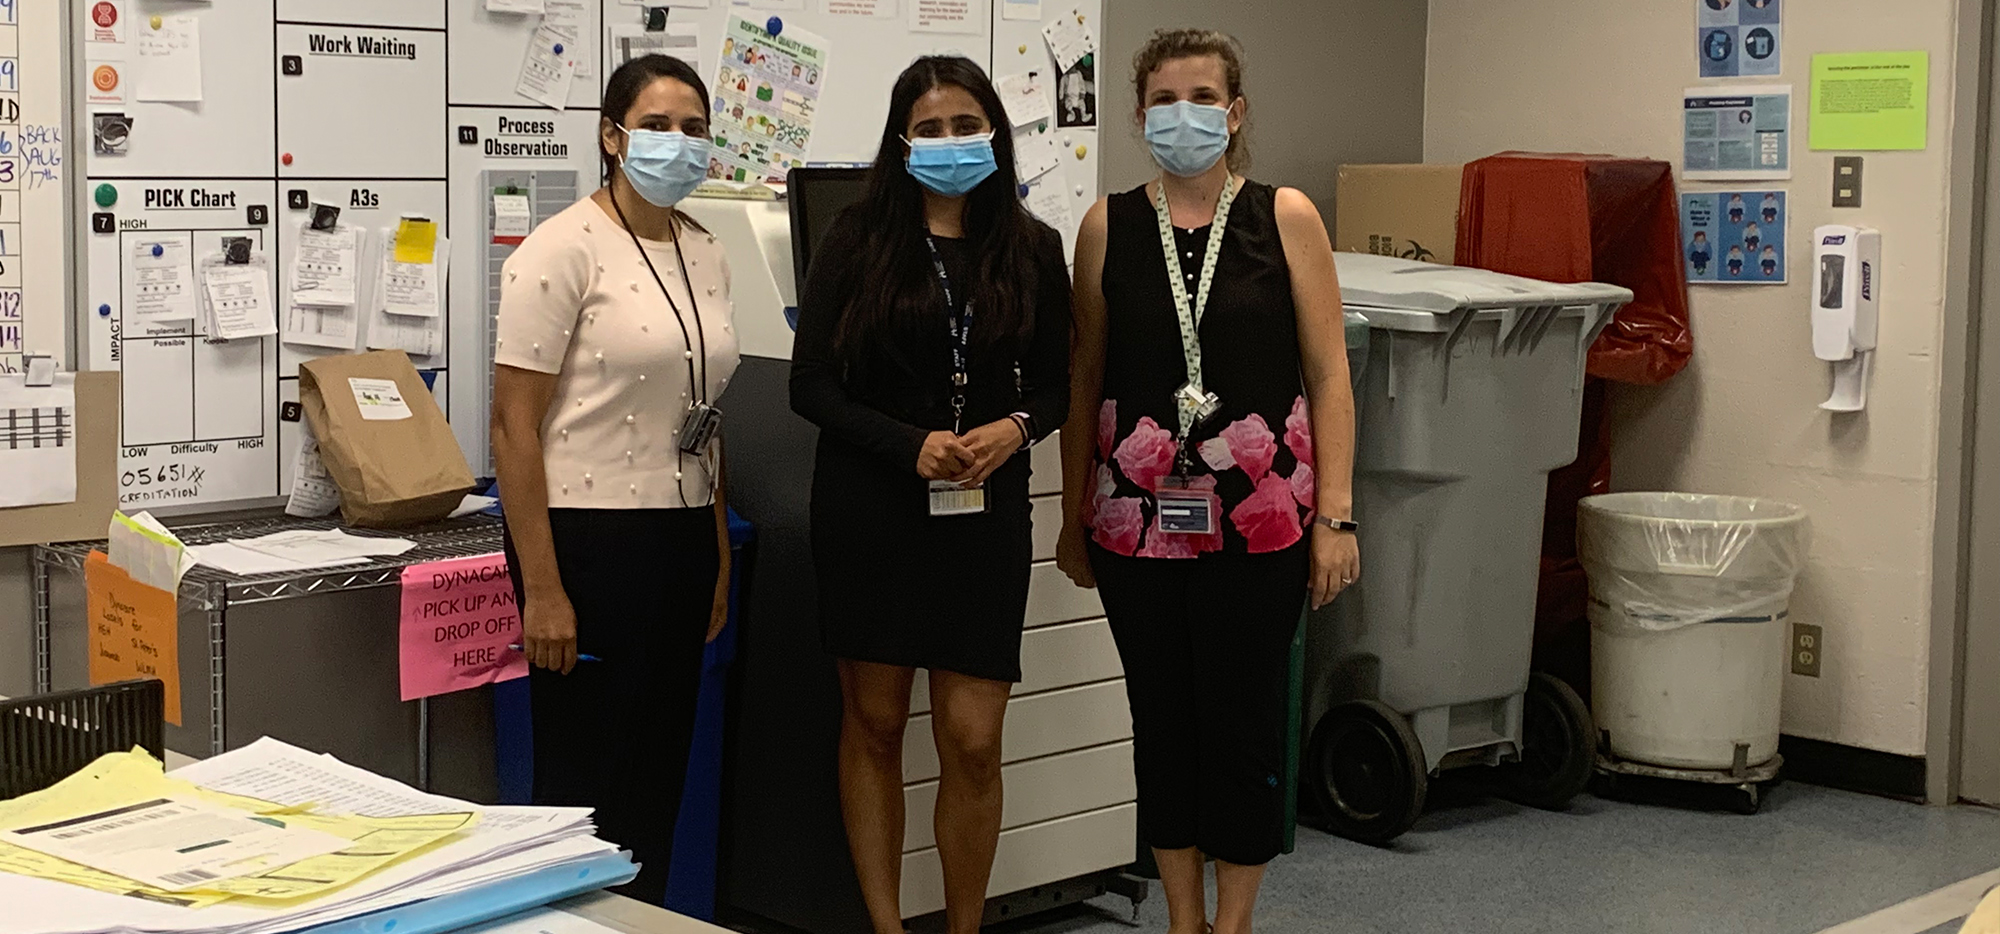 Lauren and coworkers at the hospital